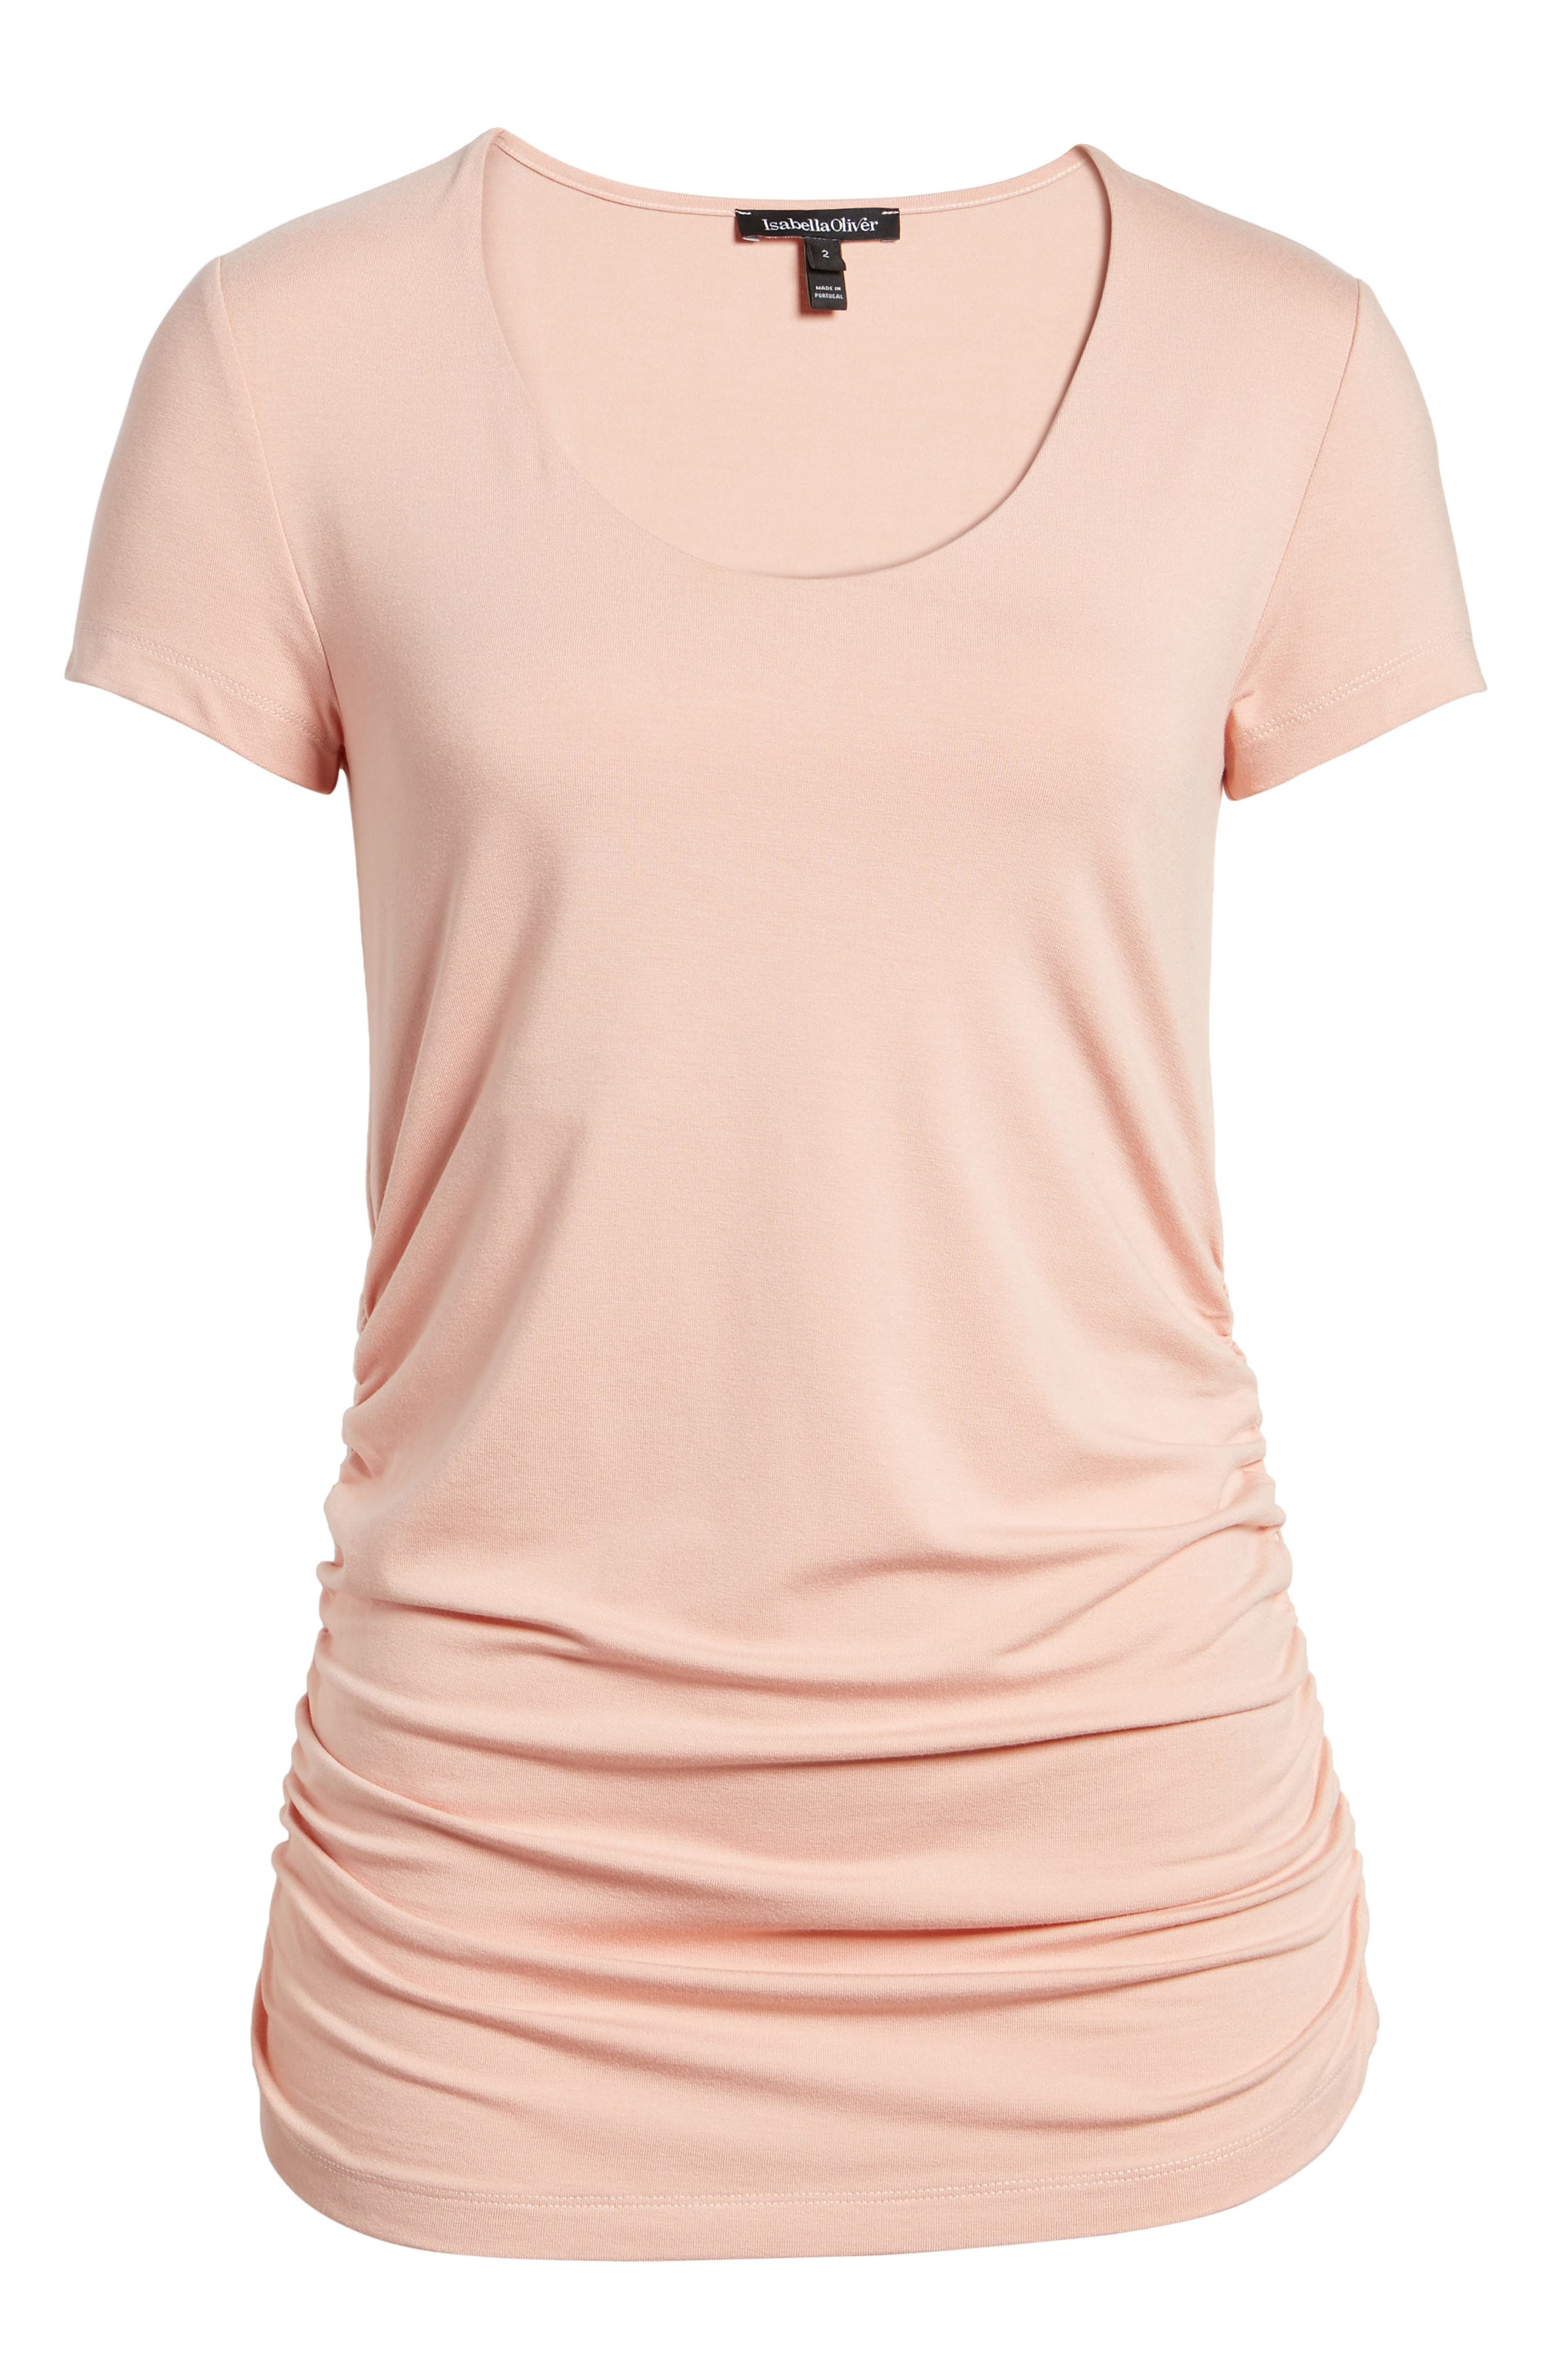 Scoop Neck Maternity Tee,                             Alternate thumbnail 6, color,                             QUARTZ PINK